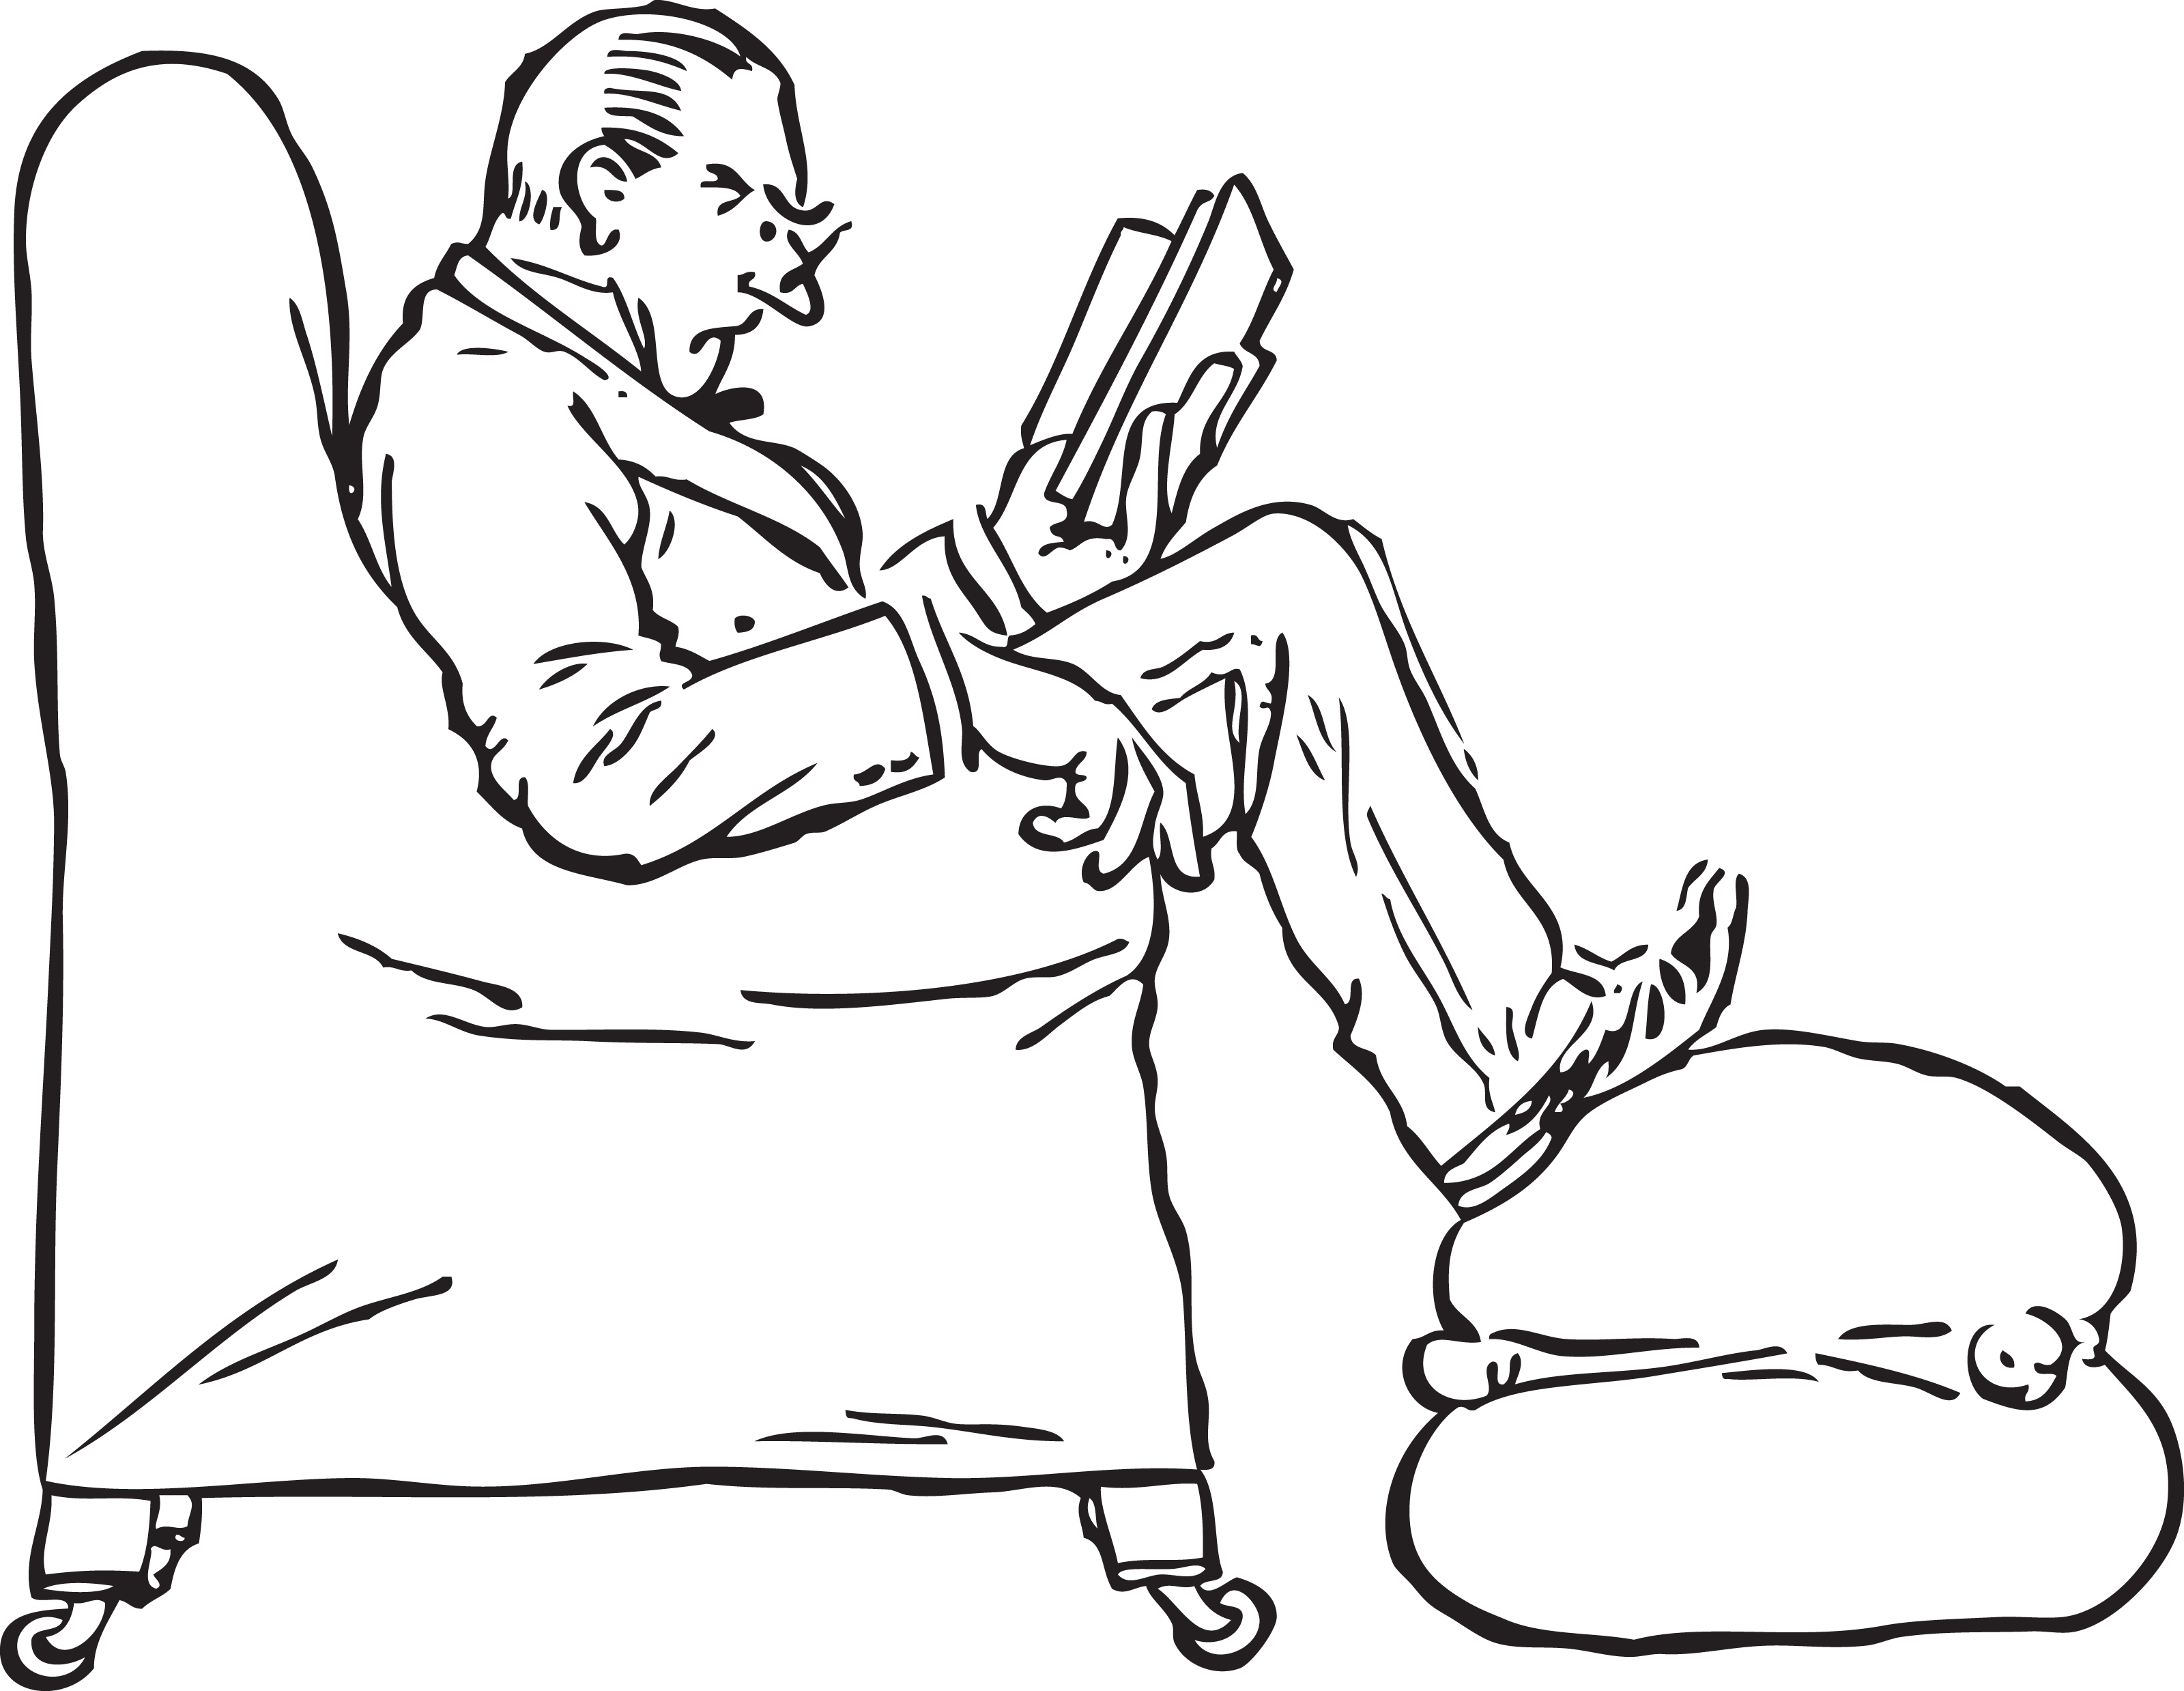 Black and white chair drawing - Free Retro Clipart Illustration Of Man Reading Book While Sitting In Chair 000178